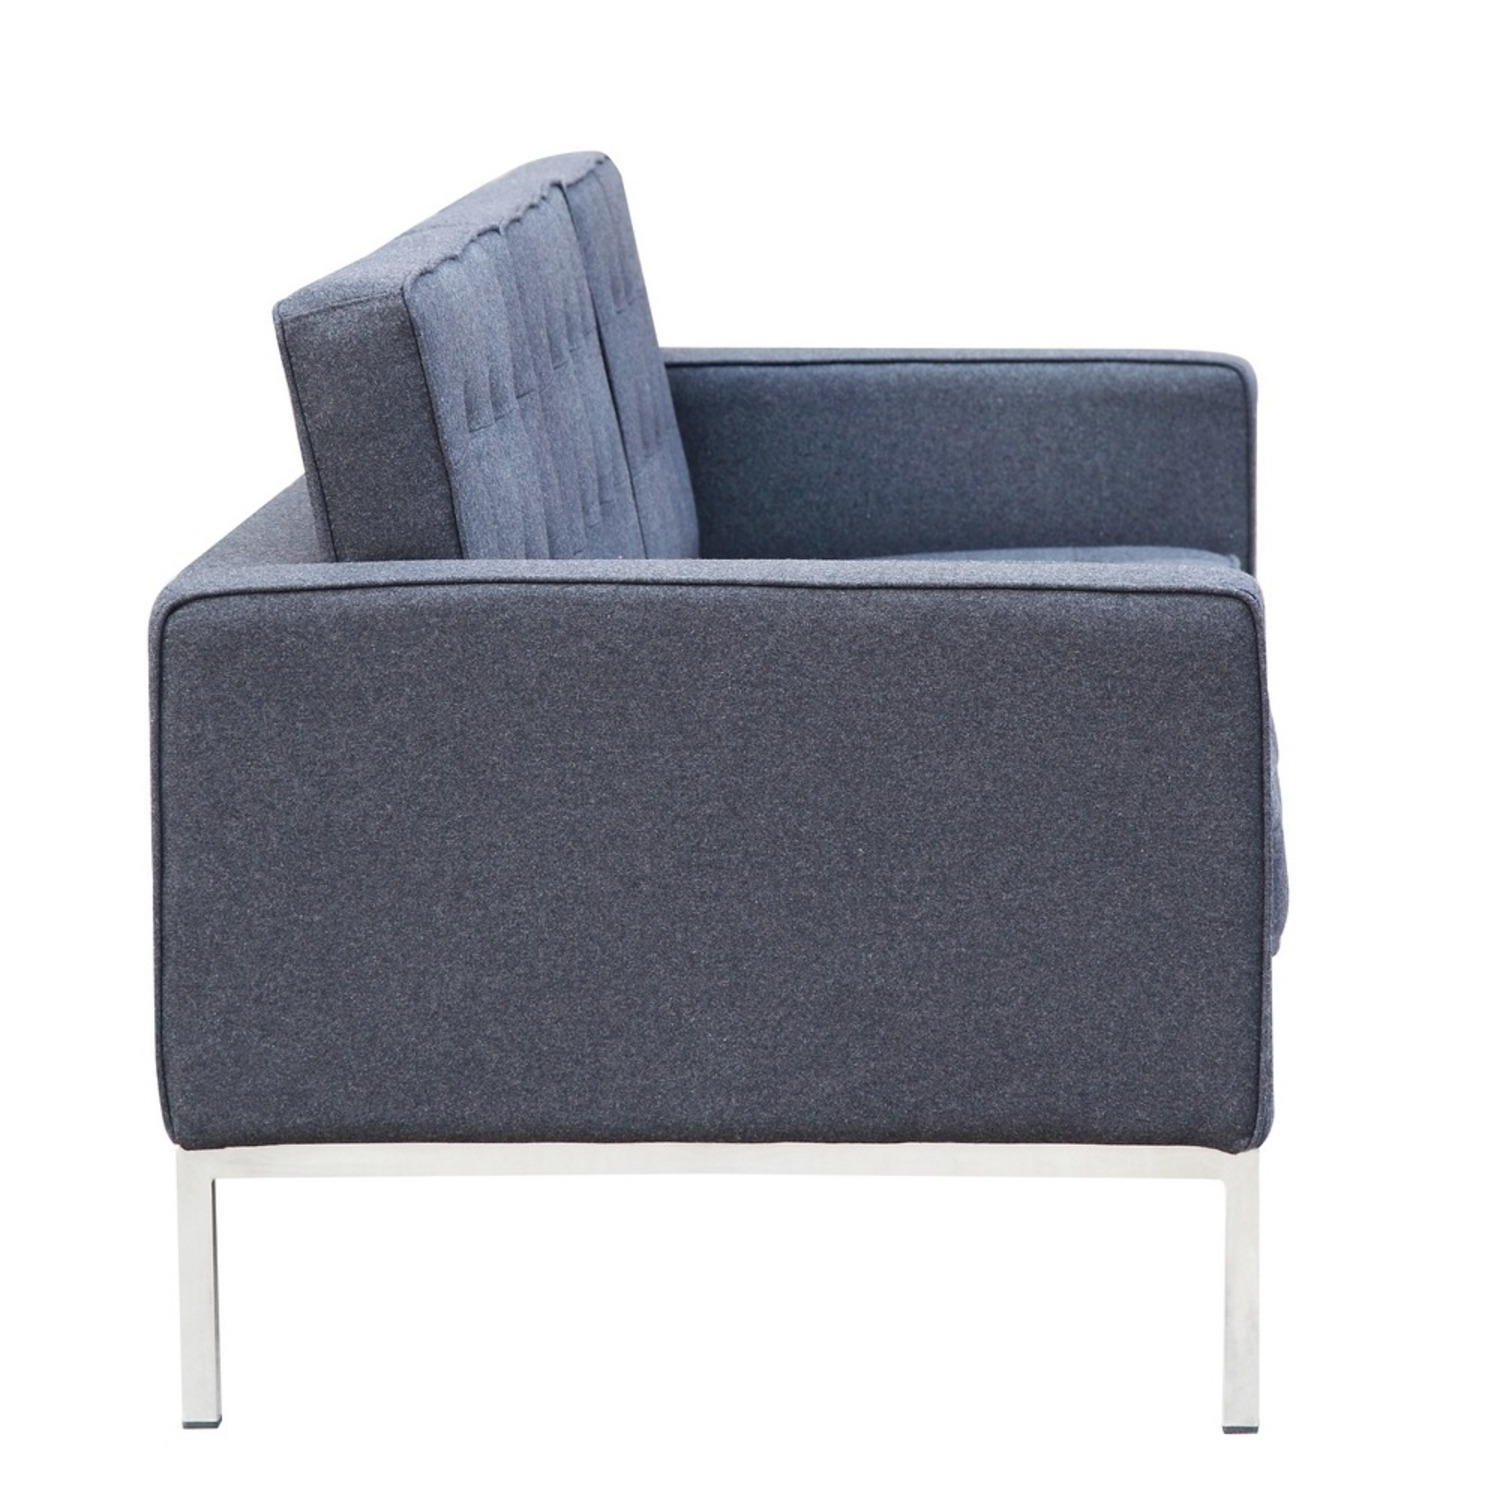 Contemporary Sofa In Gray Wool Fabric - image-1